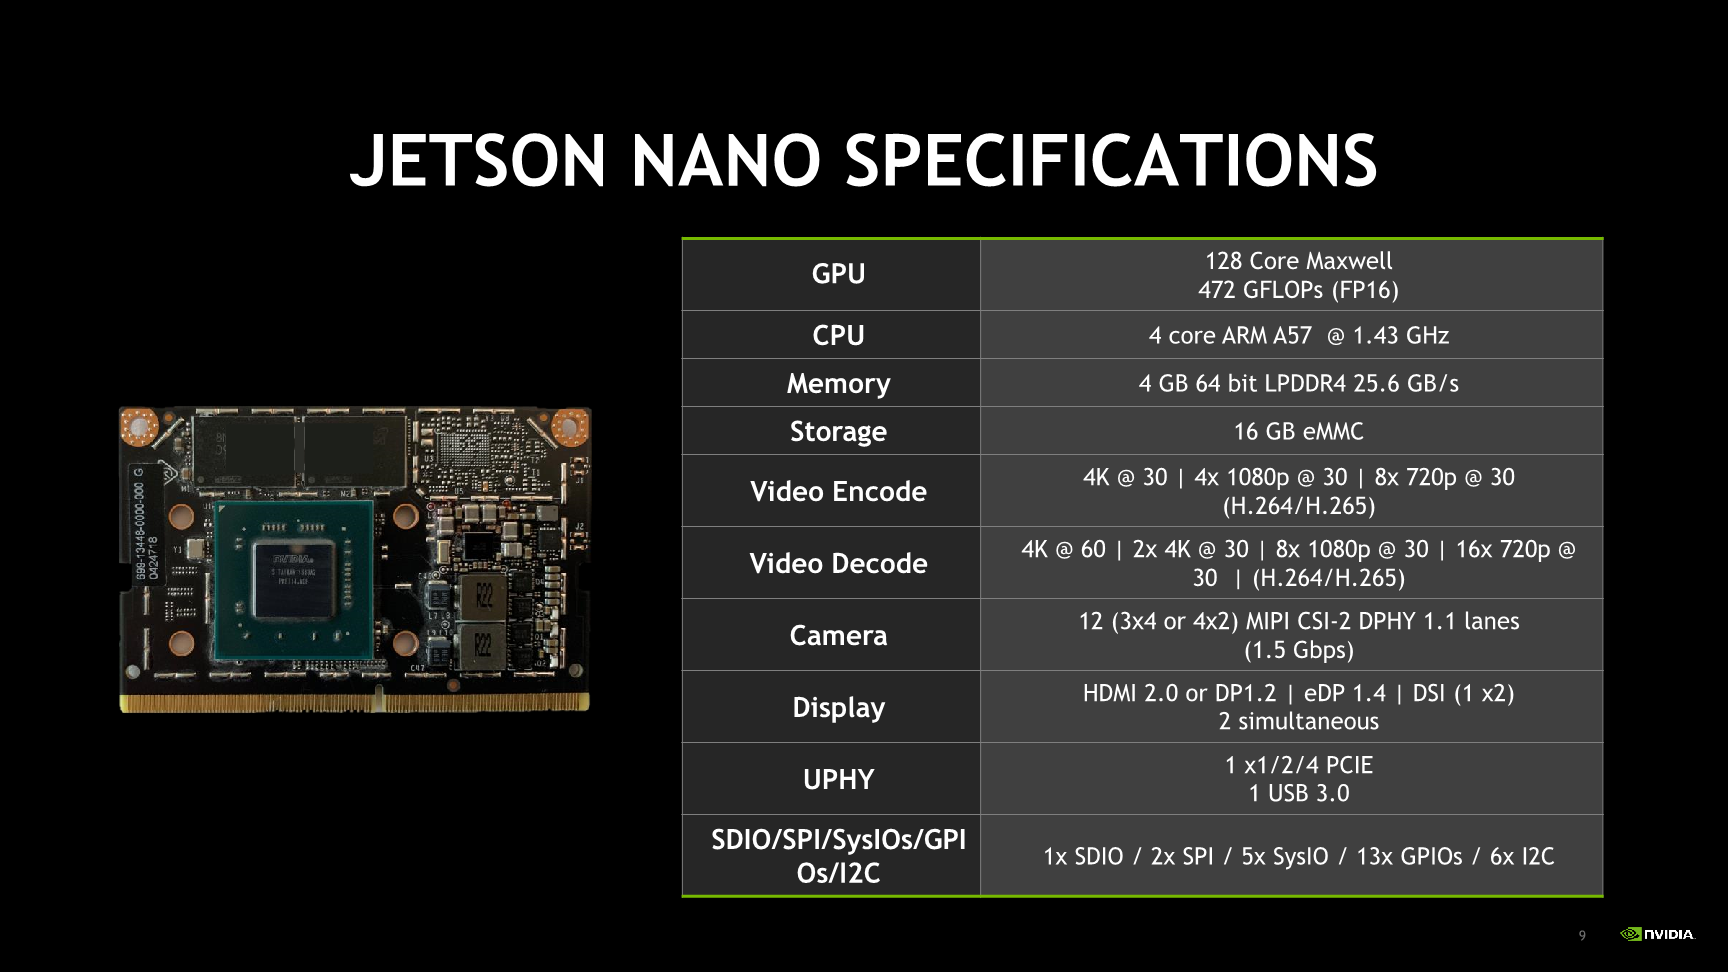 Nvidia Announces Jetson Nano Dev Kit & Board: X1 for $99